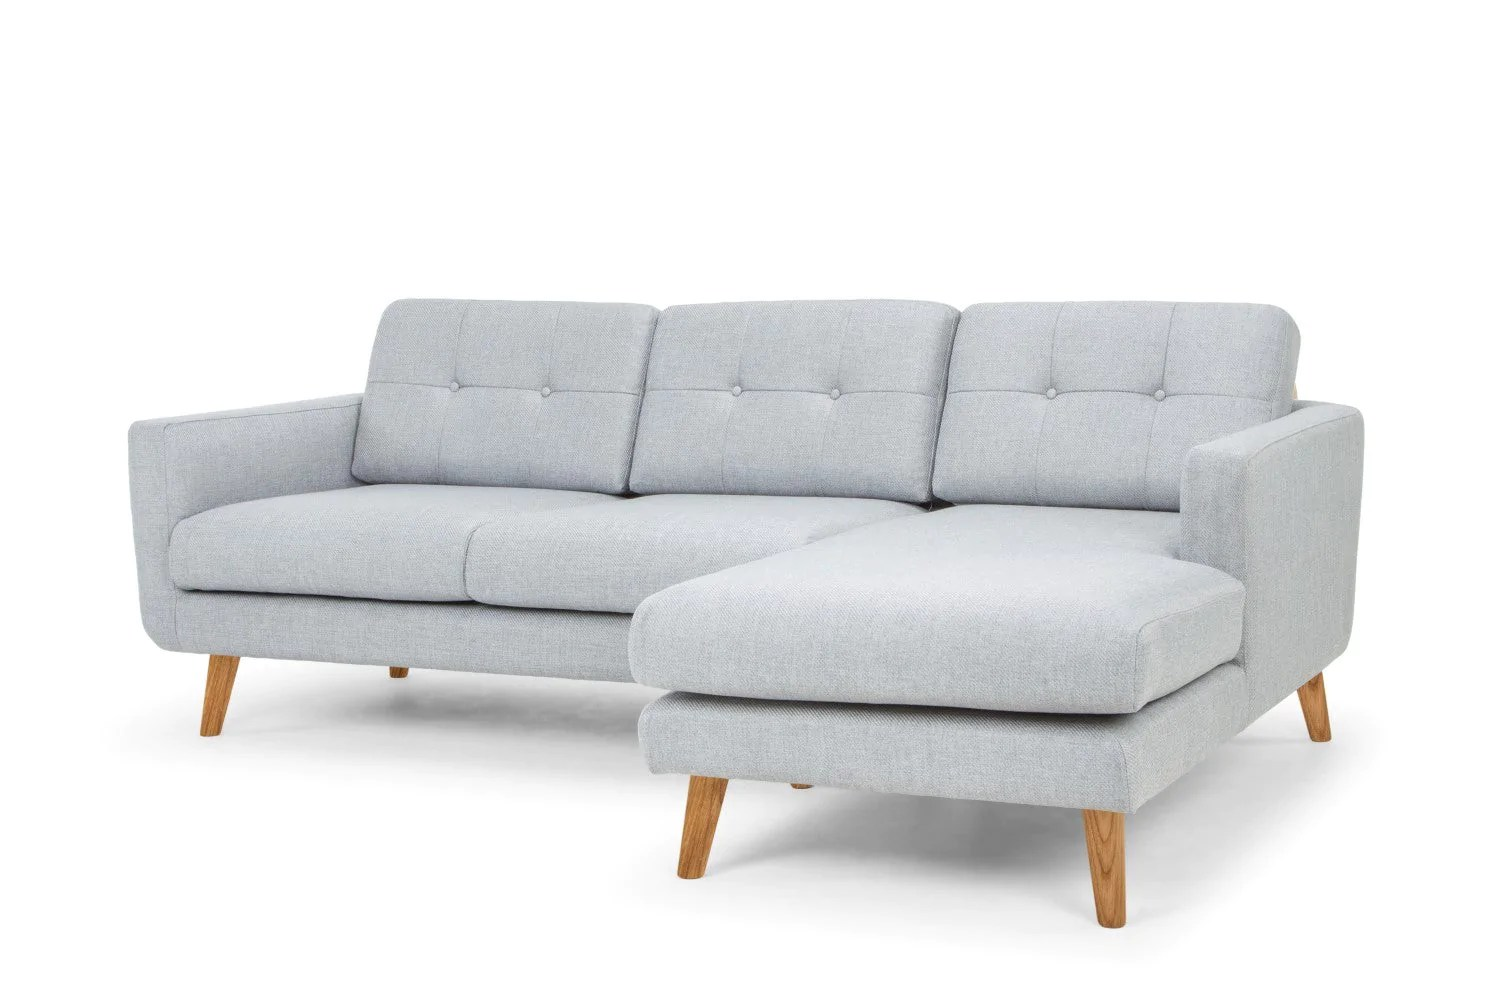 right angled sectional sofa rose sofaworks furniture maison modern home on sale now